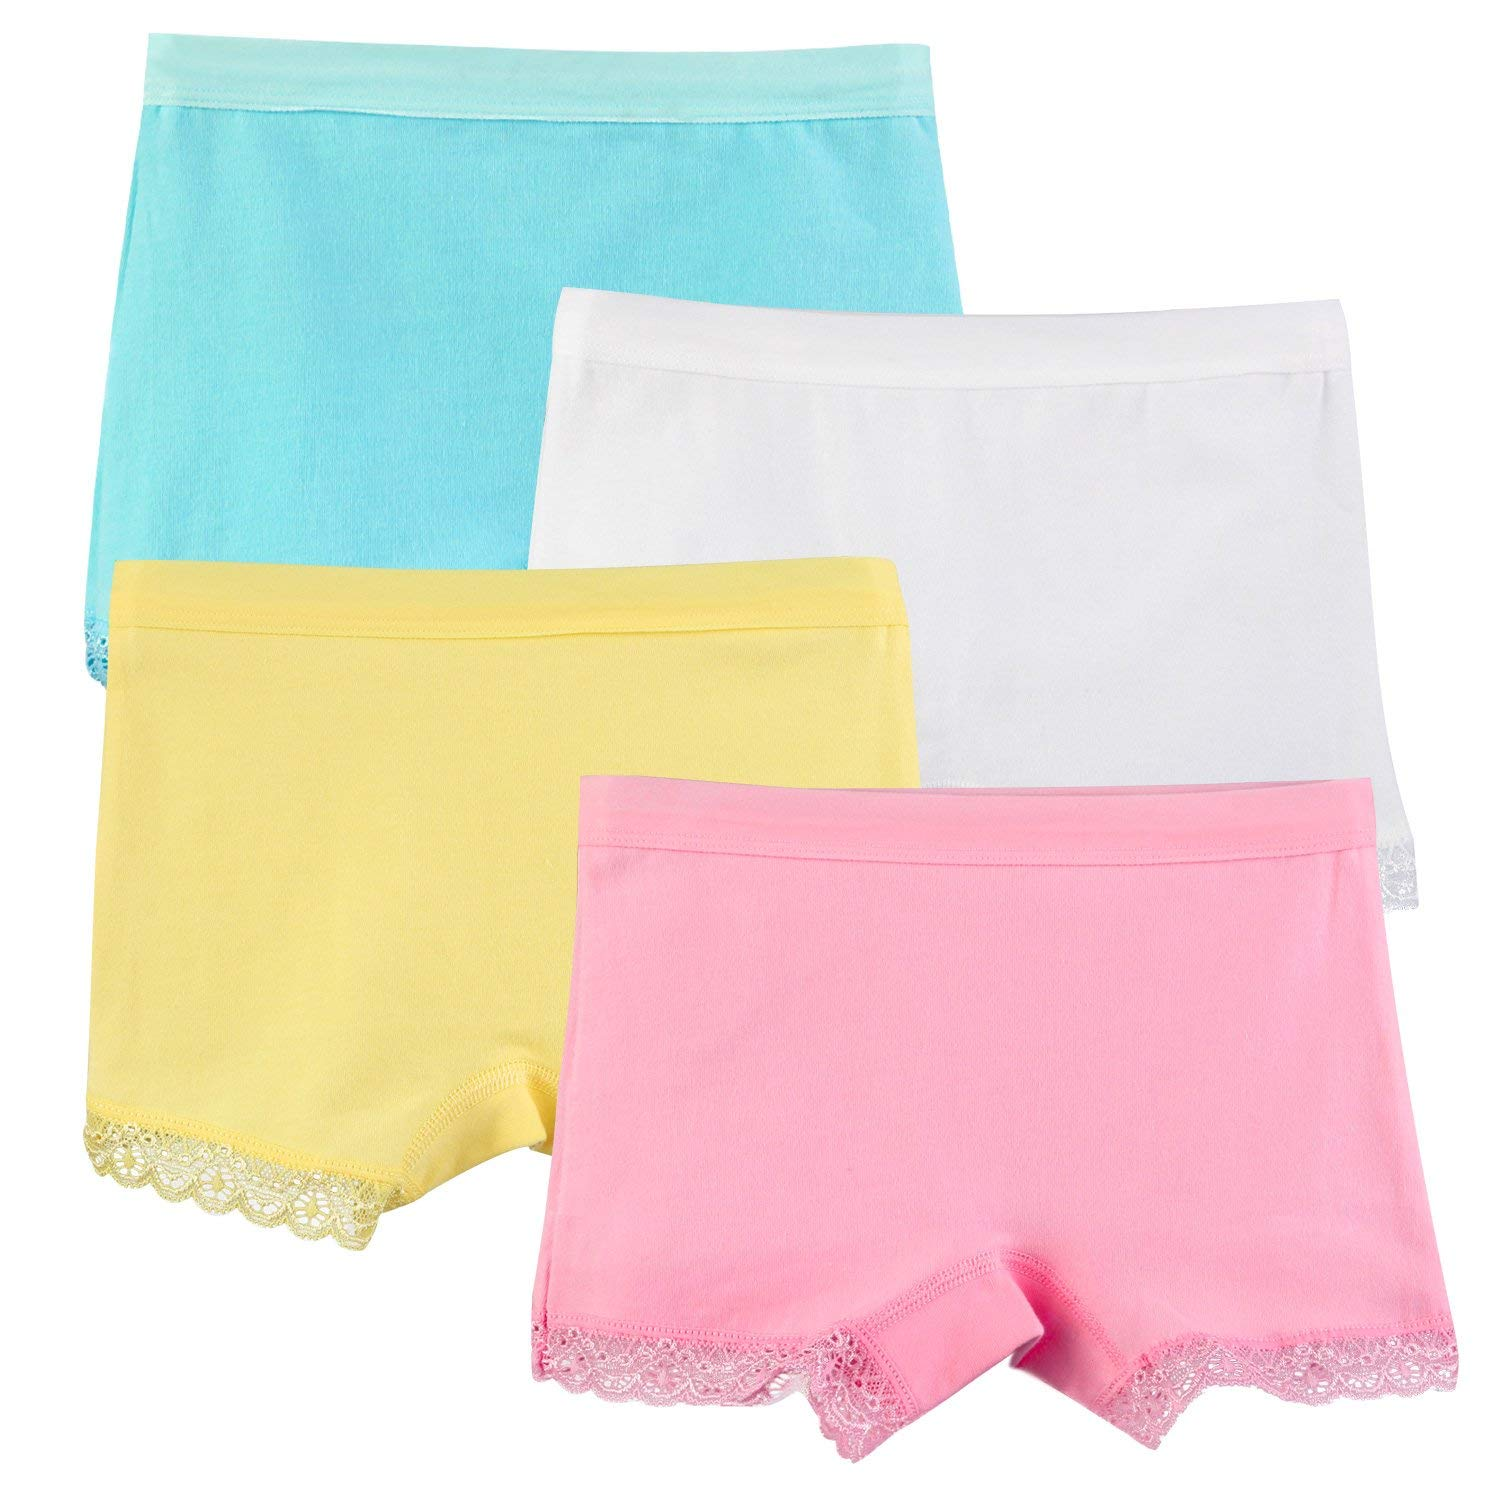 73be52ab704 Get Quotations · BOOPH 4 Pack Girls Underwear Toddler Panties Cotton Lace  Trim Colorful Boyshort Hipster for Little Girl